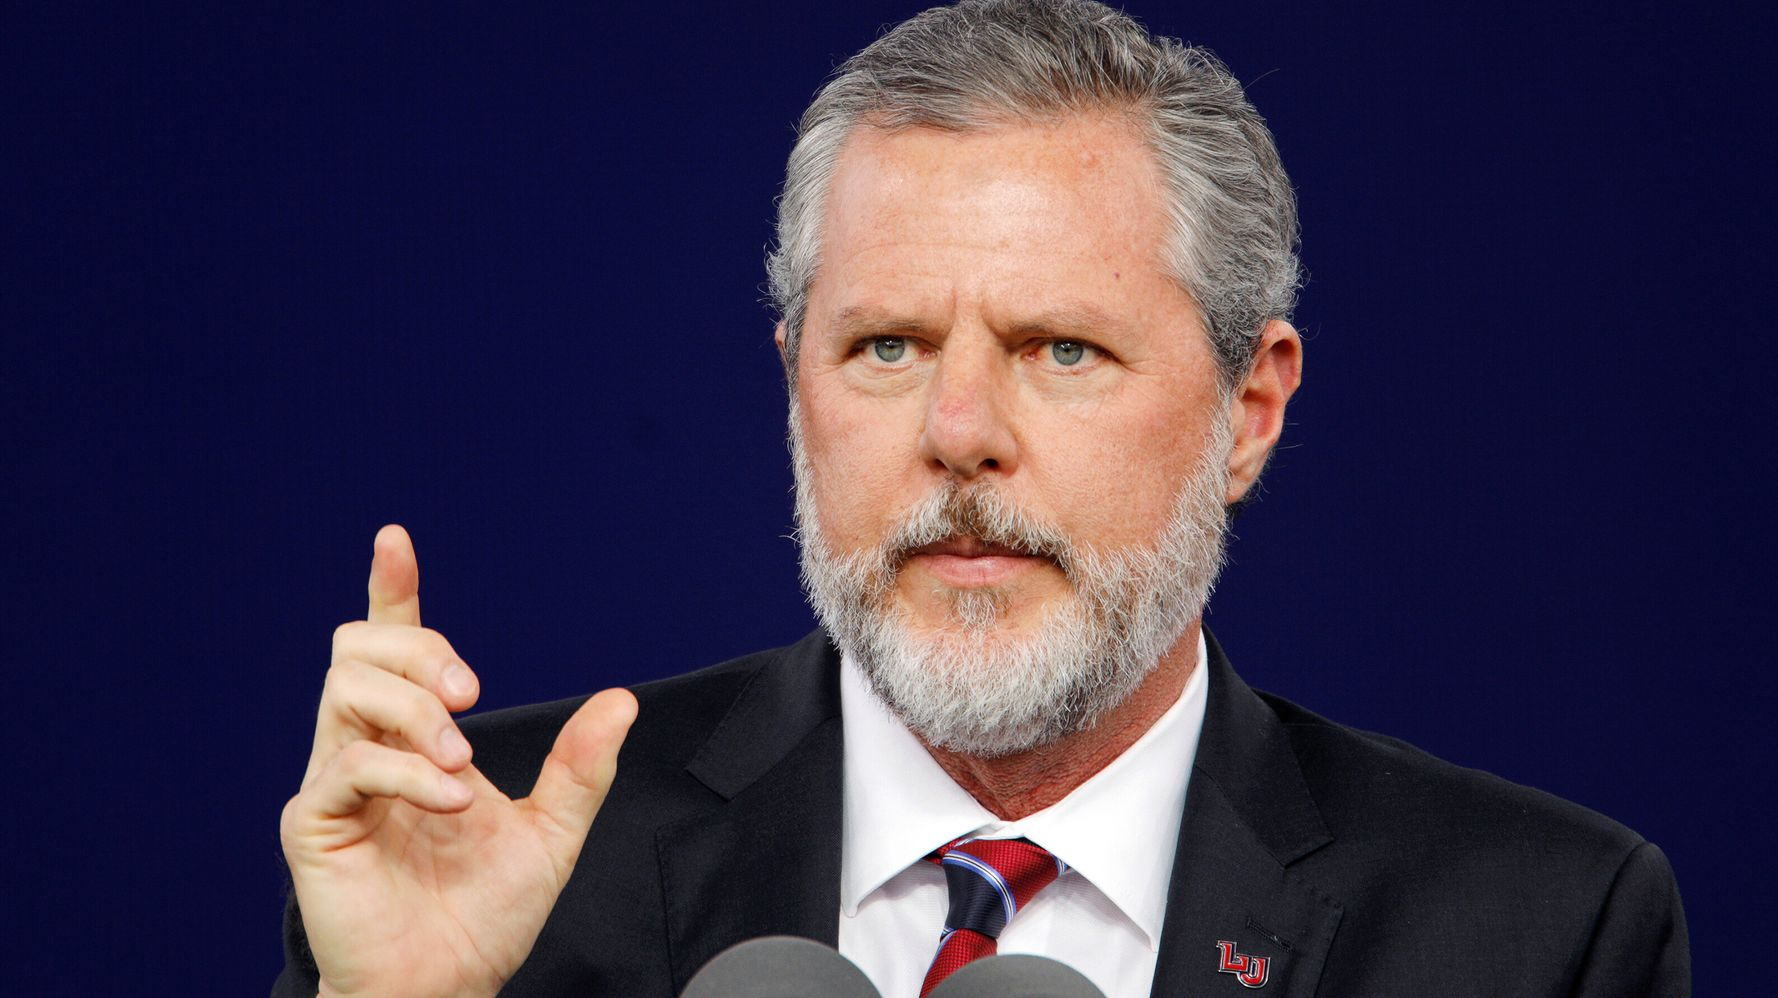 Jerry Falwell Apologizes For Pic Of Him With Unzipped Pants In Head-Scratching Interview